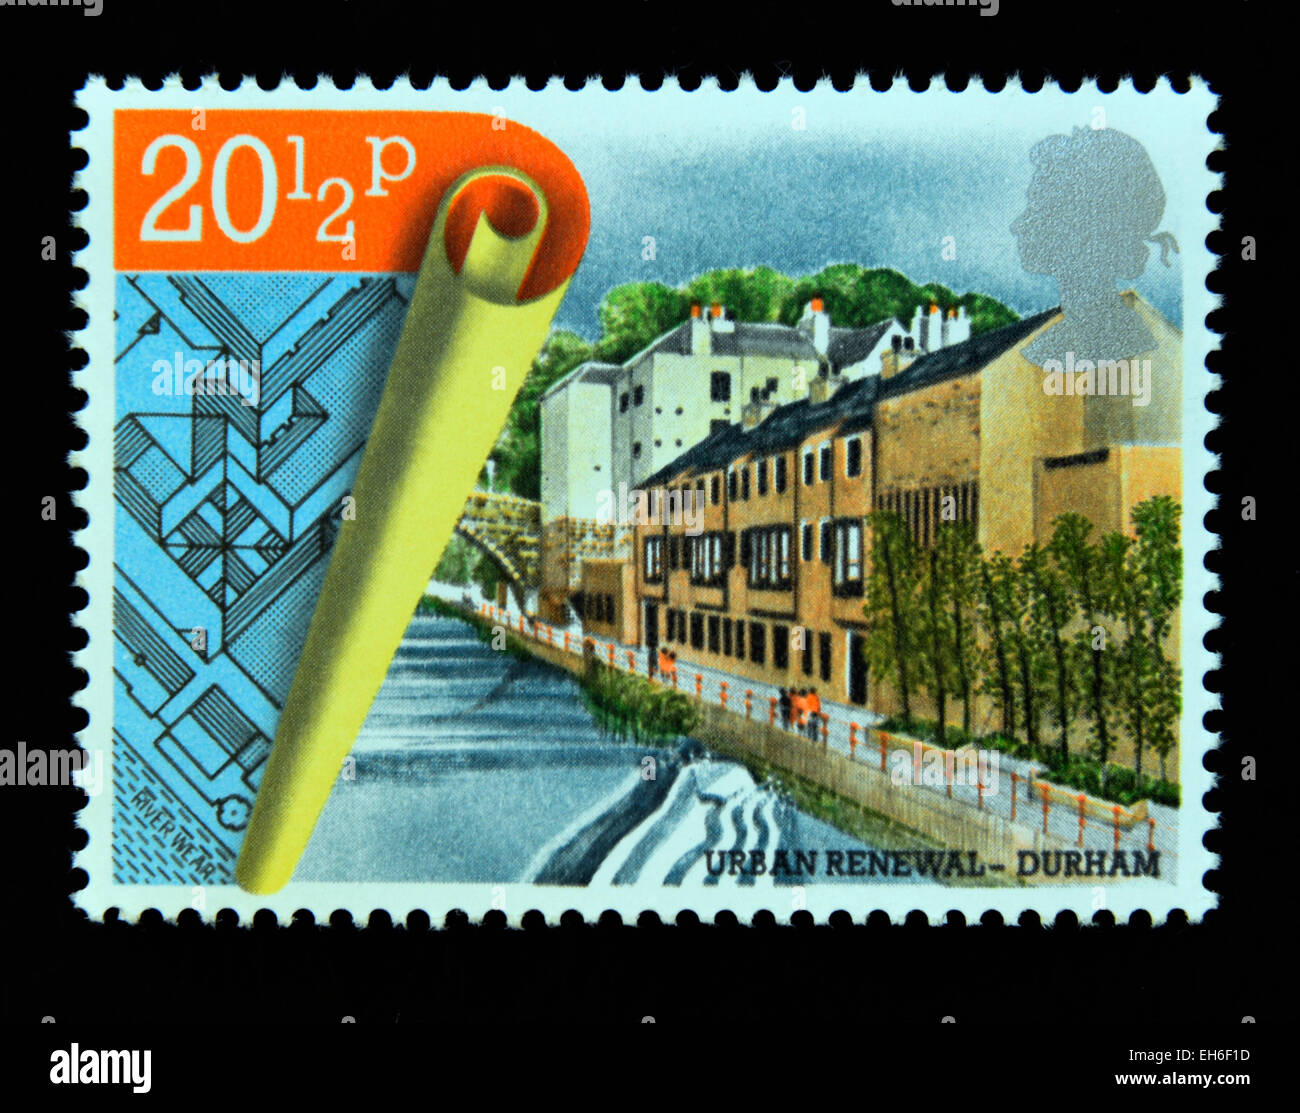 Postage stamp. Great Britain. Queen Elizabeth II. 1984. Urban Renewal. Milburngate Centre, Durham. - Stock Image